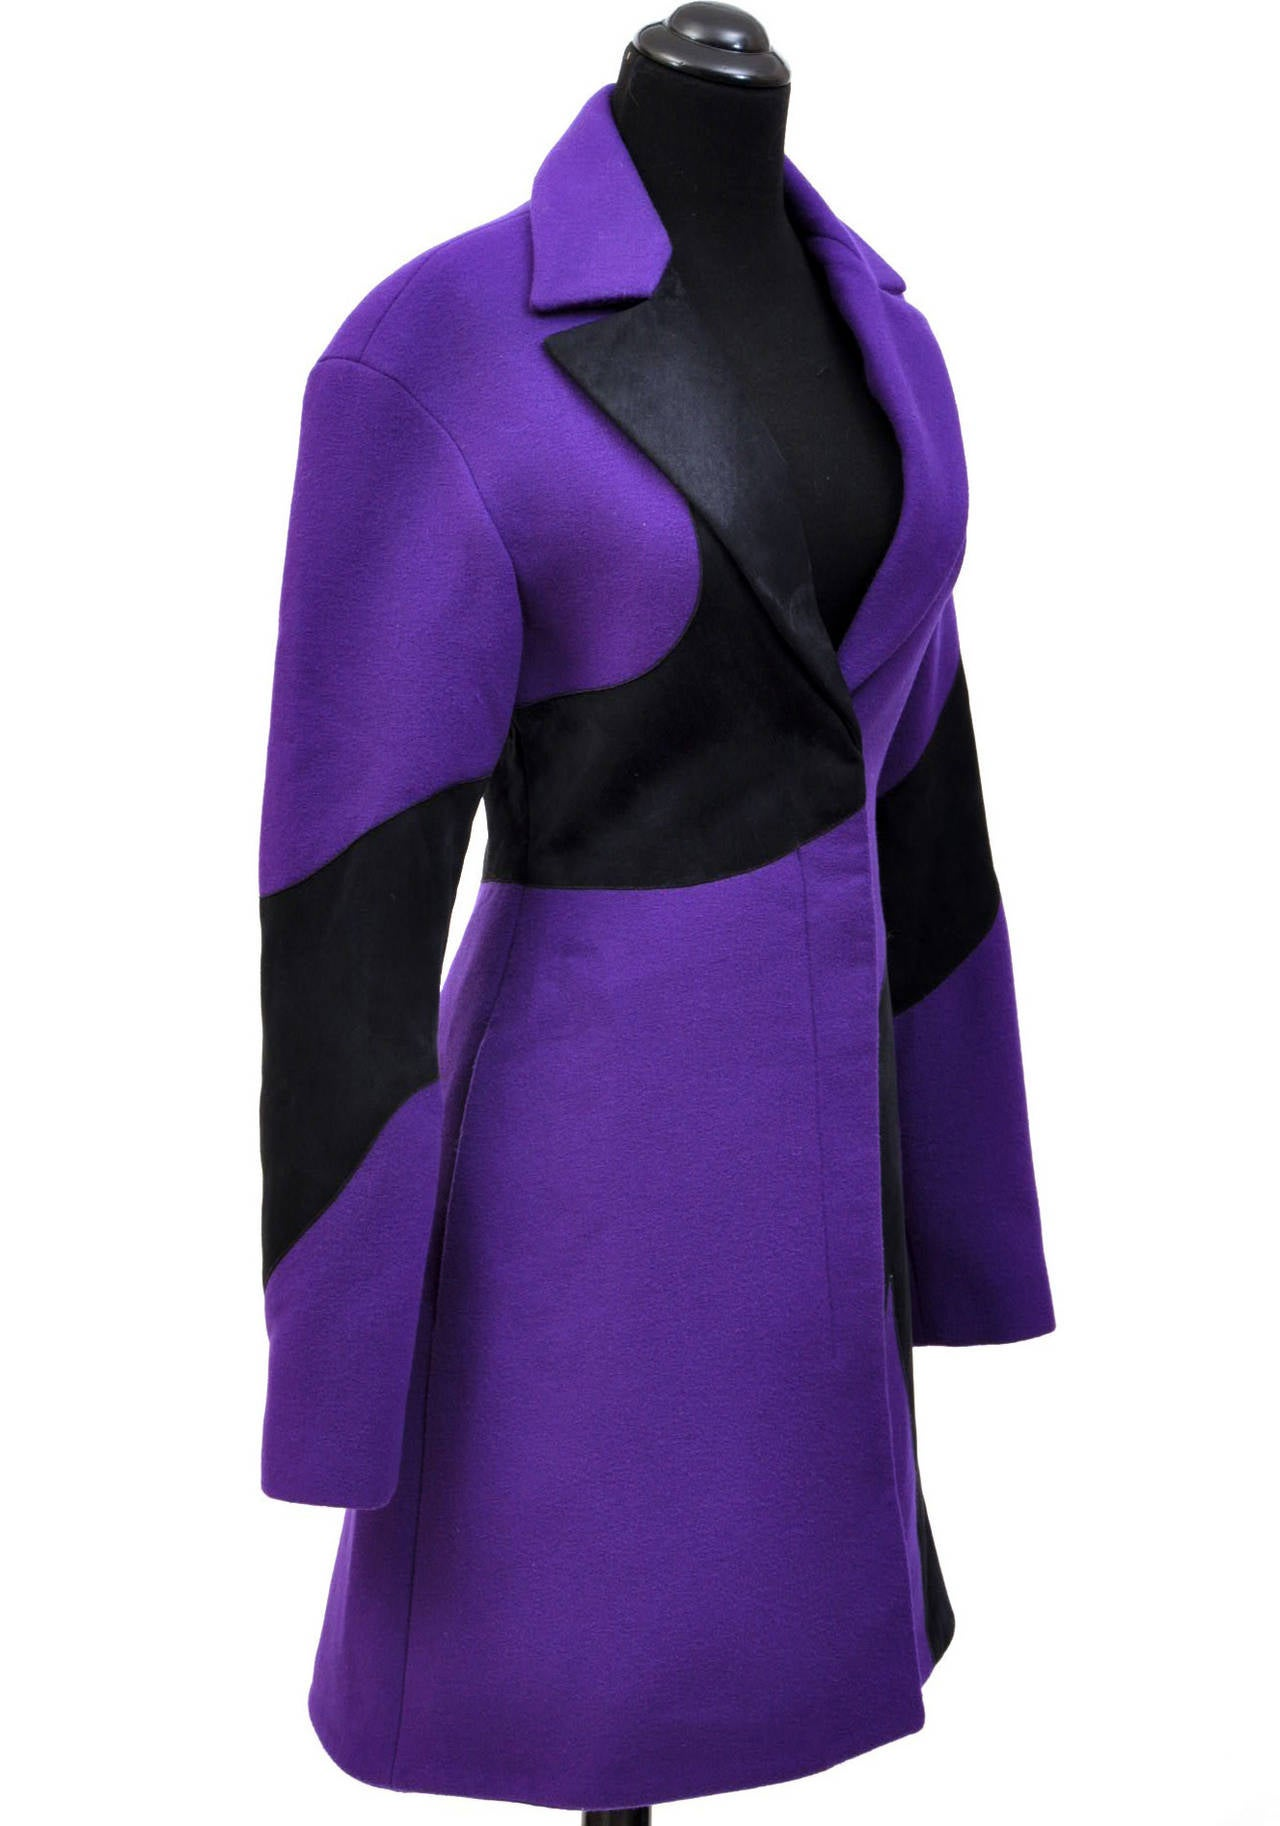 New VERSACE Purple Wool Coat With Leather 3